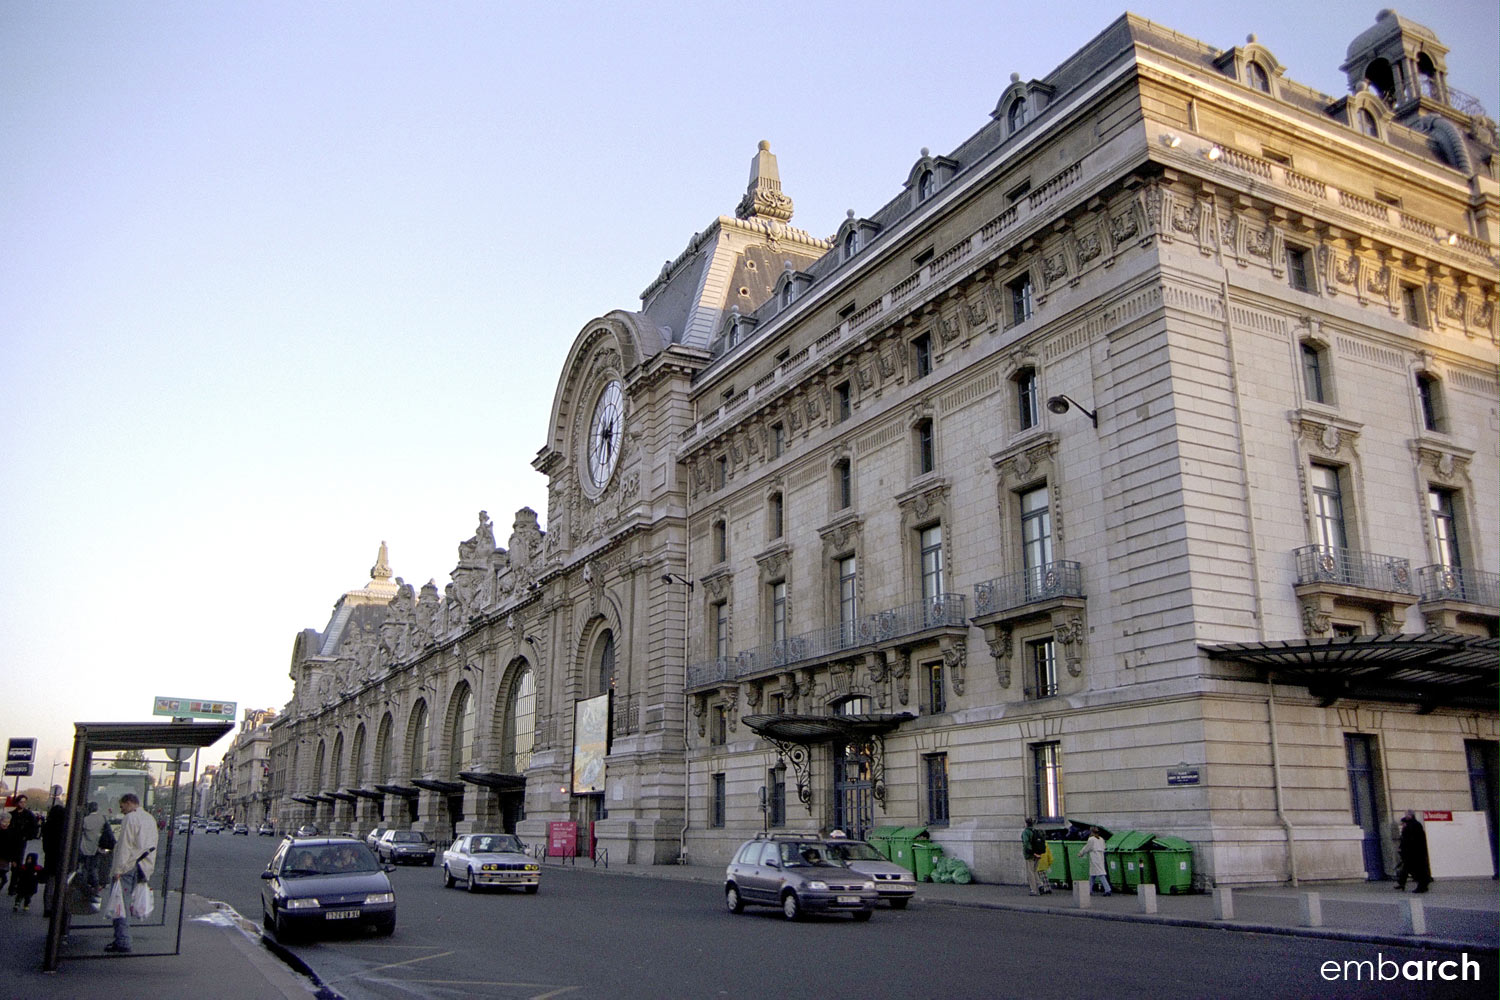 Musee D'Orsay - view of exterior